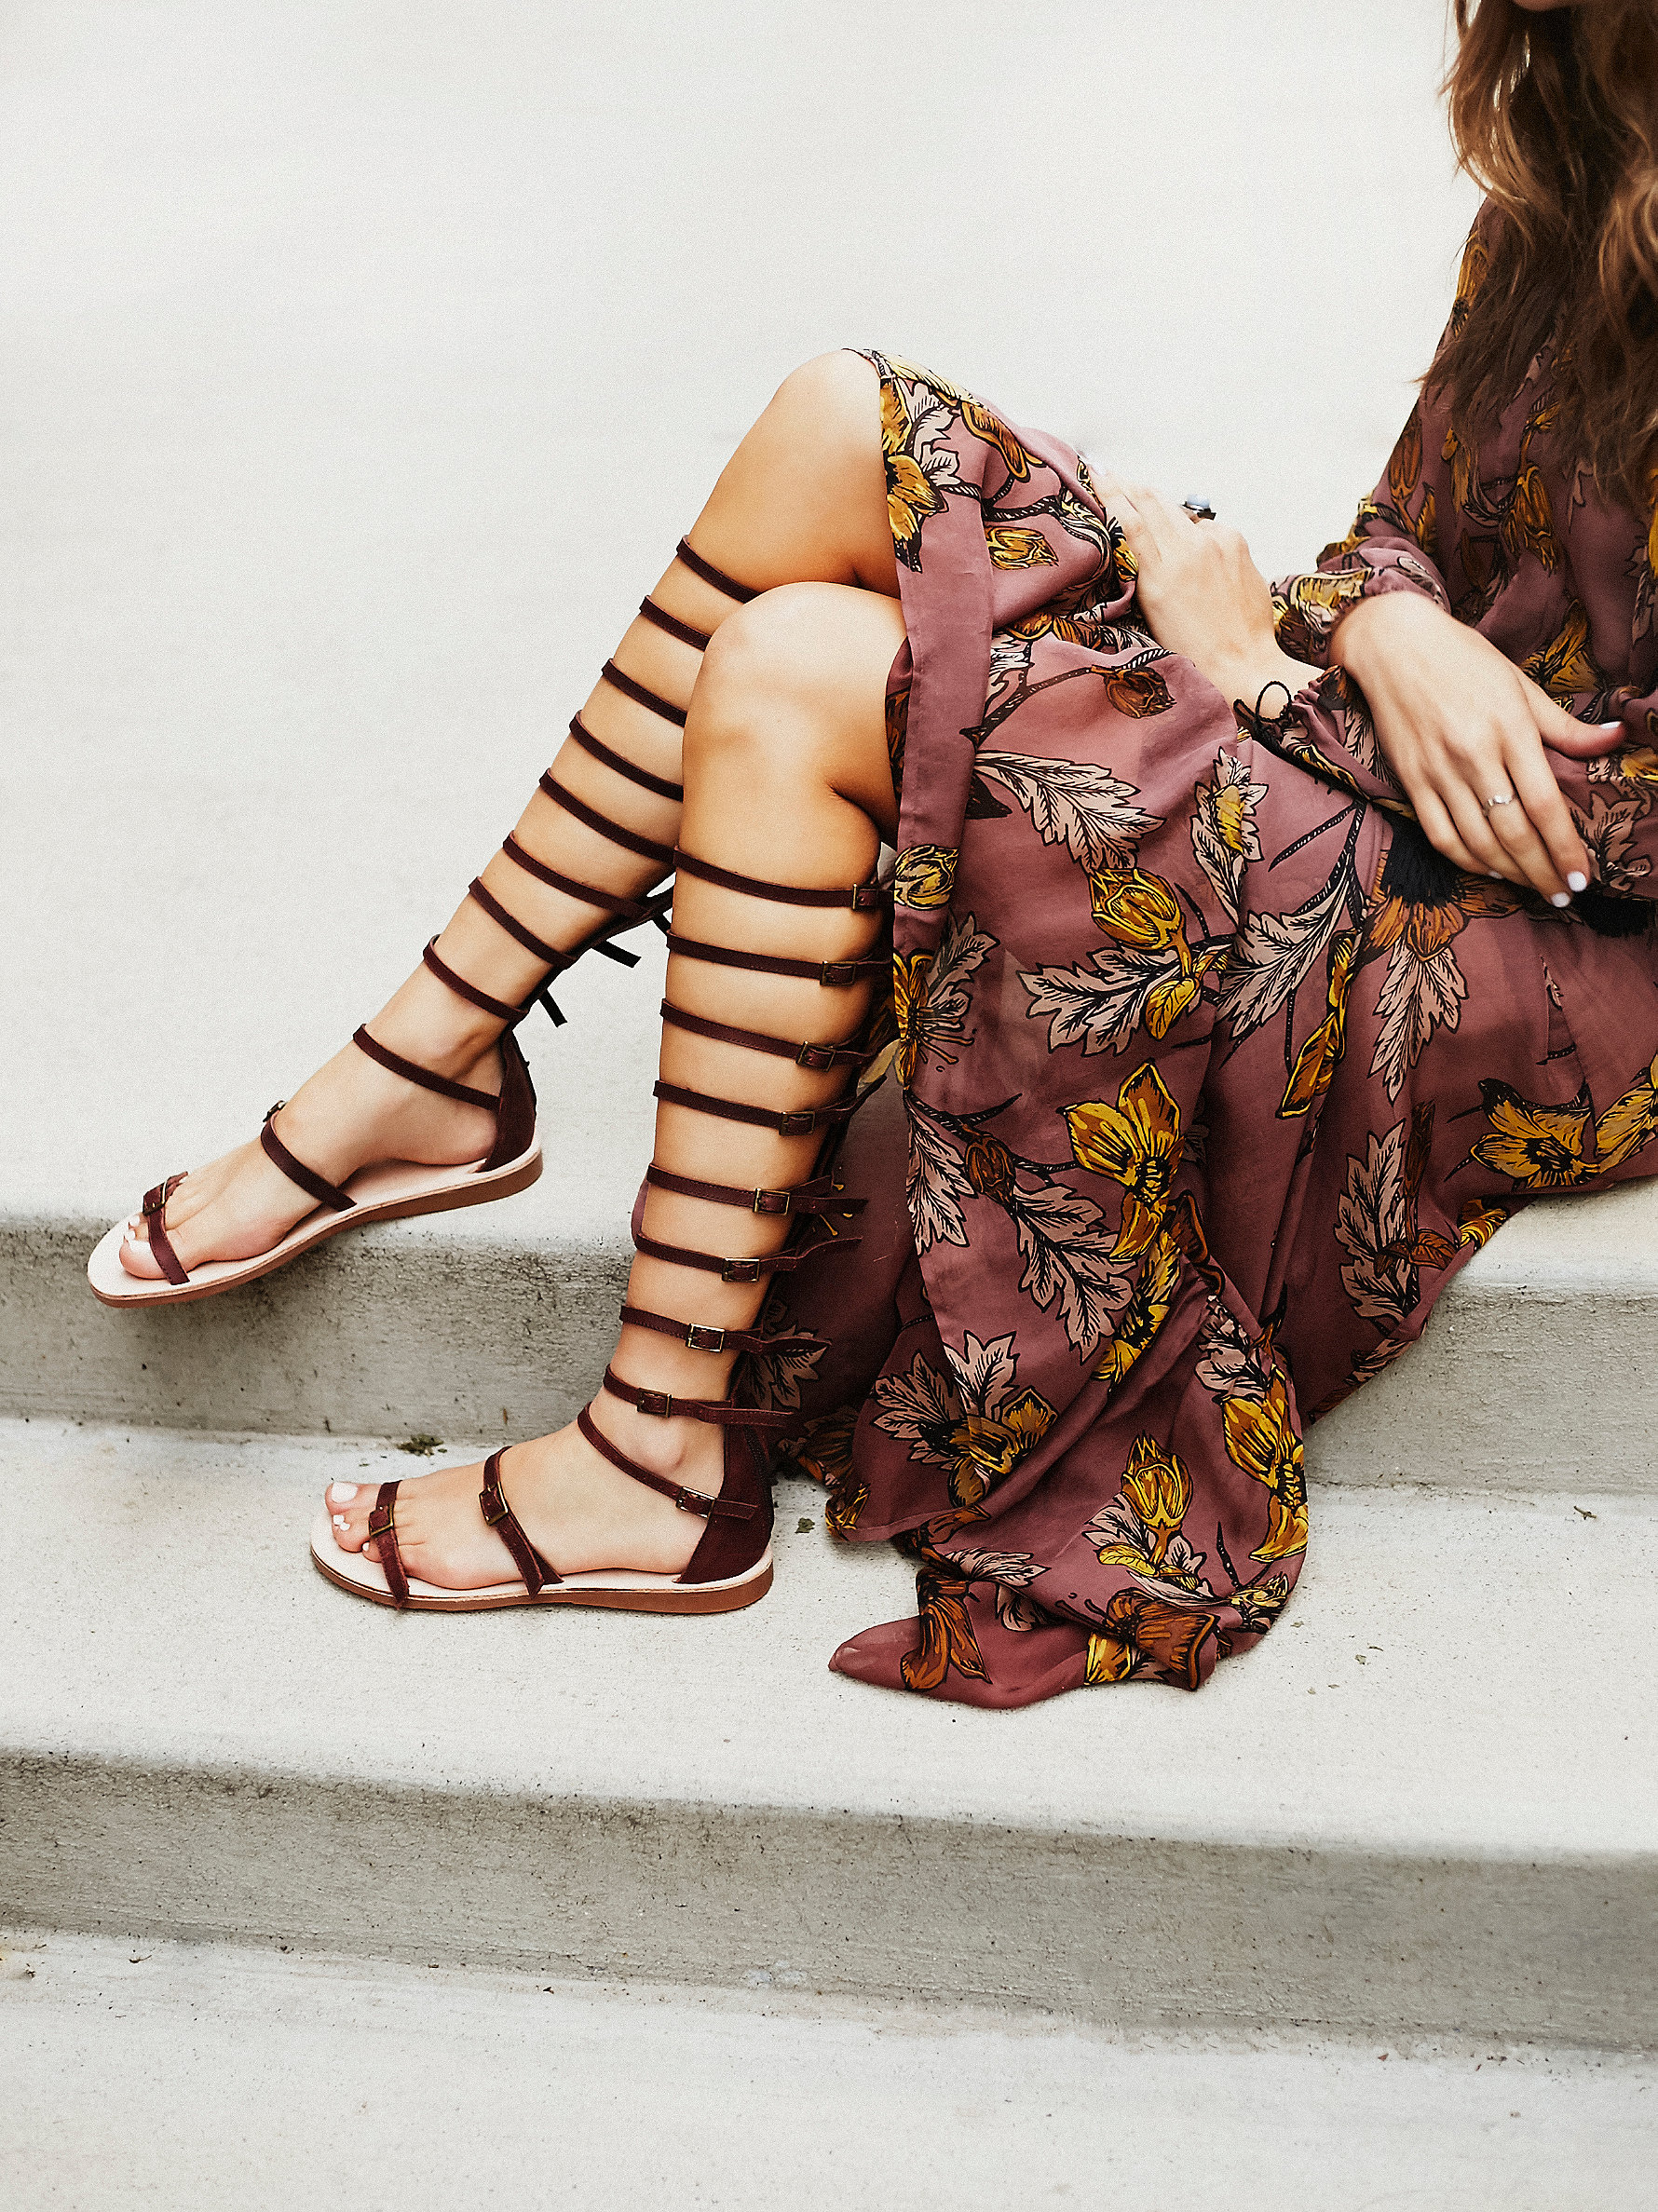 Free People's Sexy Strappy Sandals - Jeffrey Campbell + Free People Star Valley Gladiator at Free People Clothing Boutique